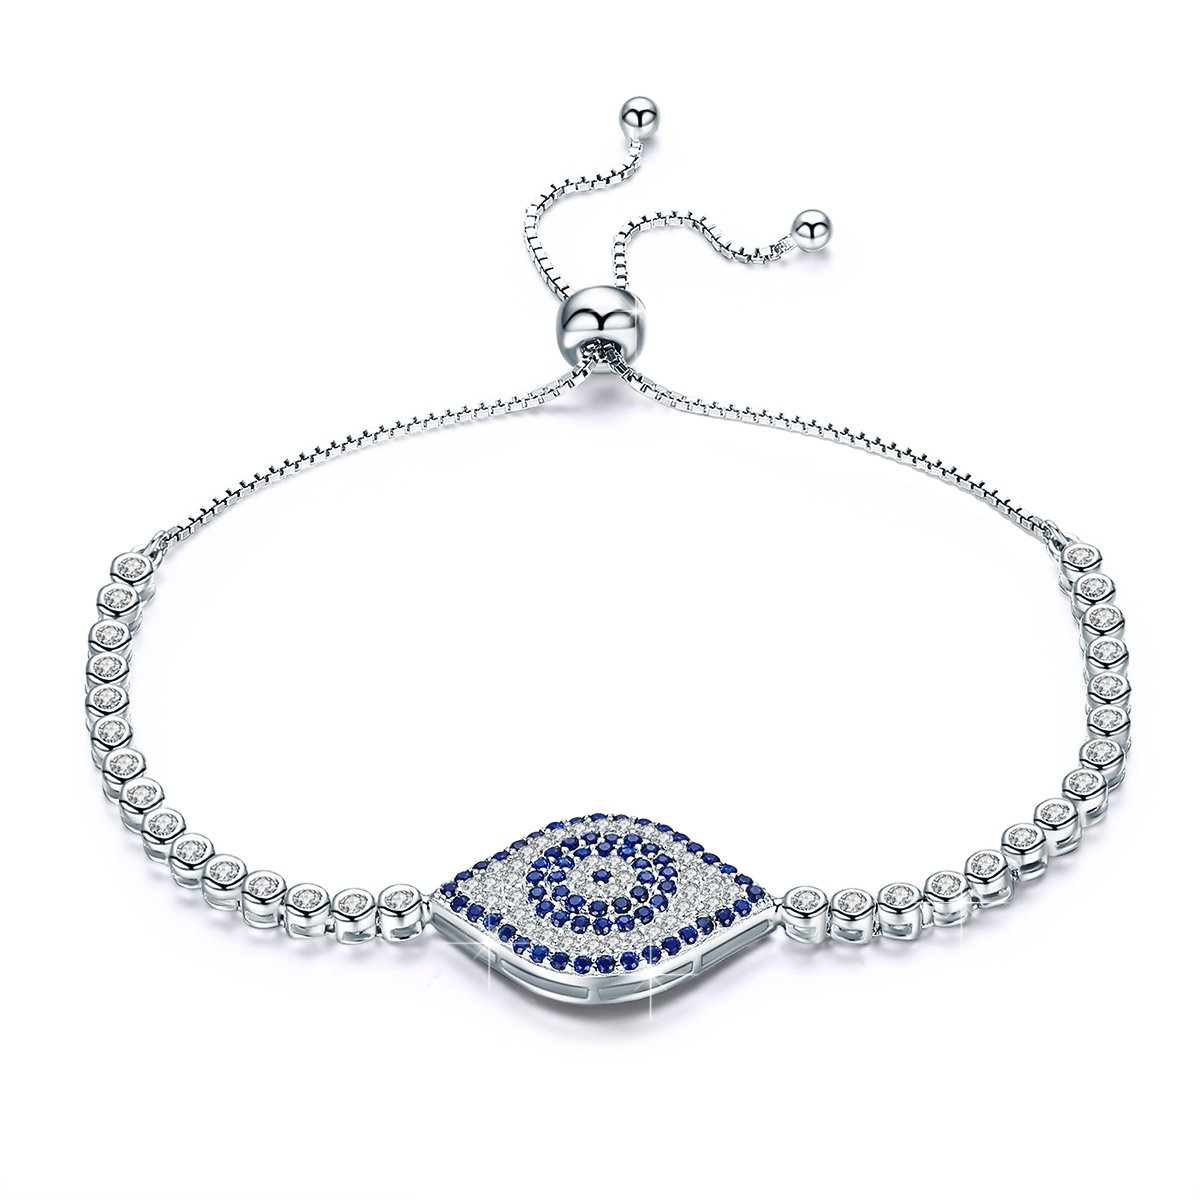 BAMOER 925 Sterling Silver Expandable Lucky Blue Evil Eye Chain Bracelet with Sparkling Cubic Zirconia for Women Girls Style 1